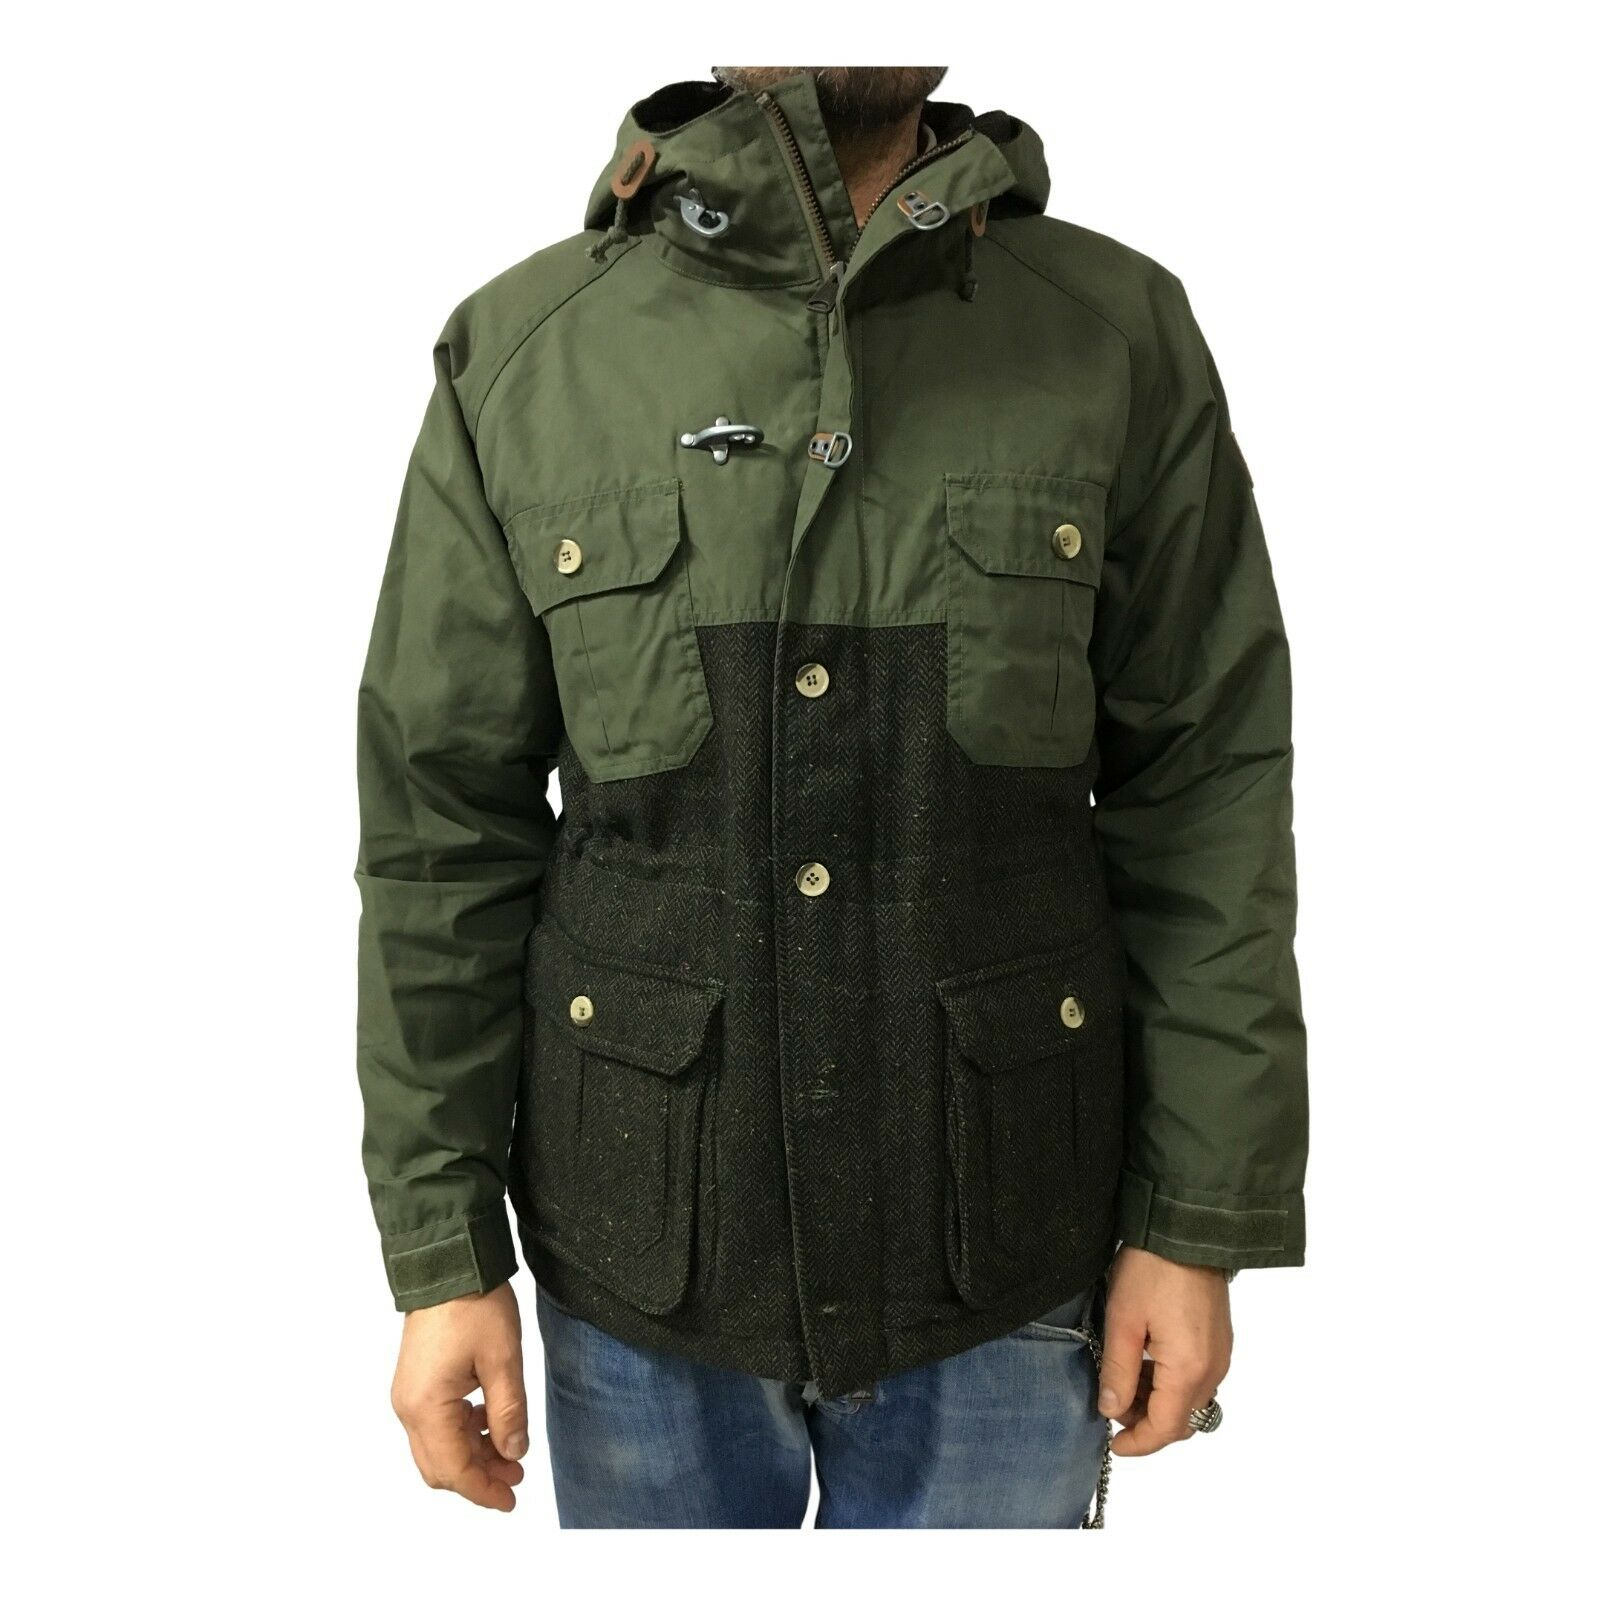 Mens Coat Green No Filling Penfield with Inserts in Wool Mod Kasson